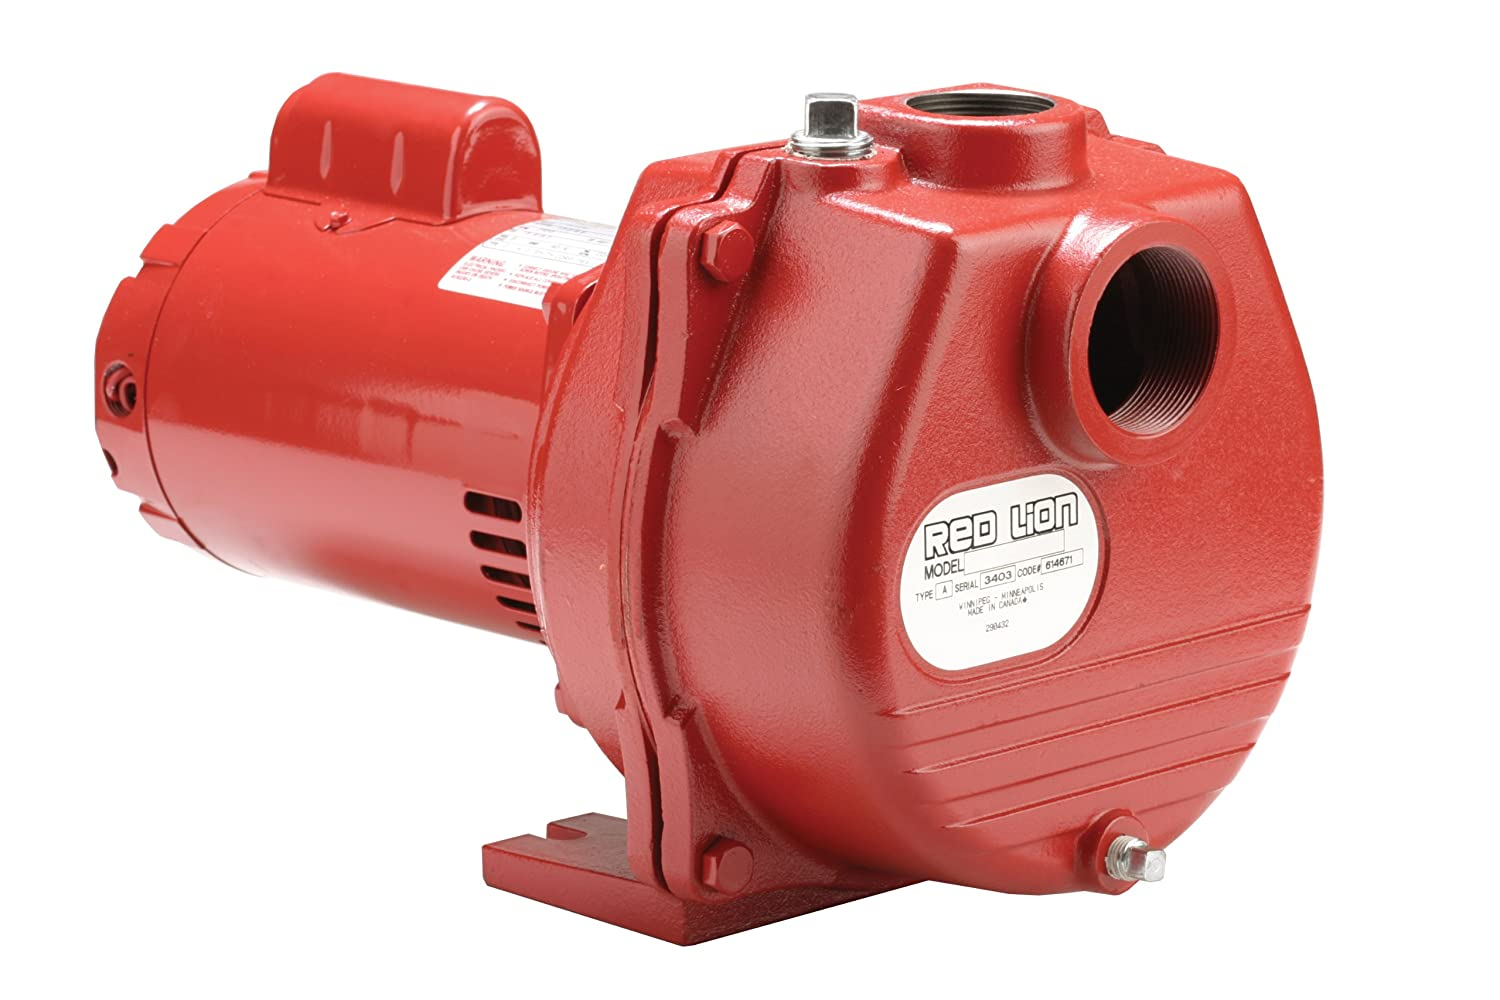 red lion rlsp 200 self priming high capacity sprinkler pump, cast  red lion rlsp 200 self priming high capacity sprinkler pump, cast iron pump, 2 hp 80 gpm sump pumps amazon com